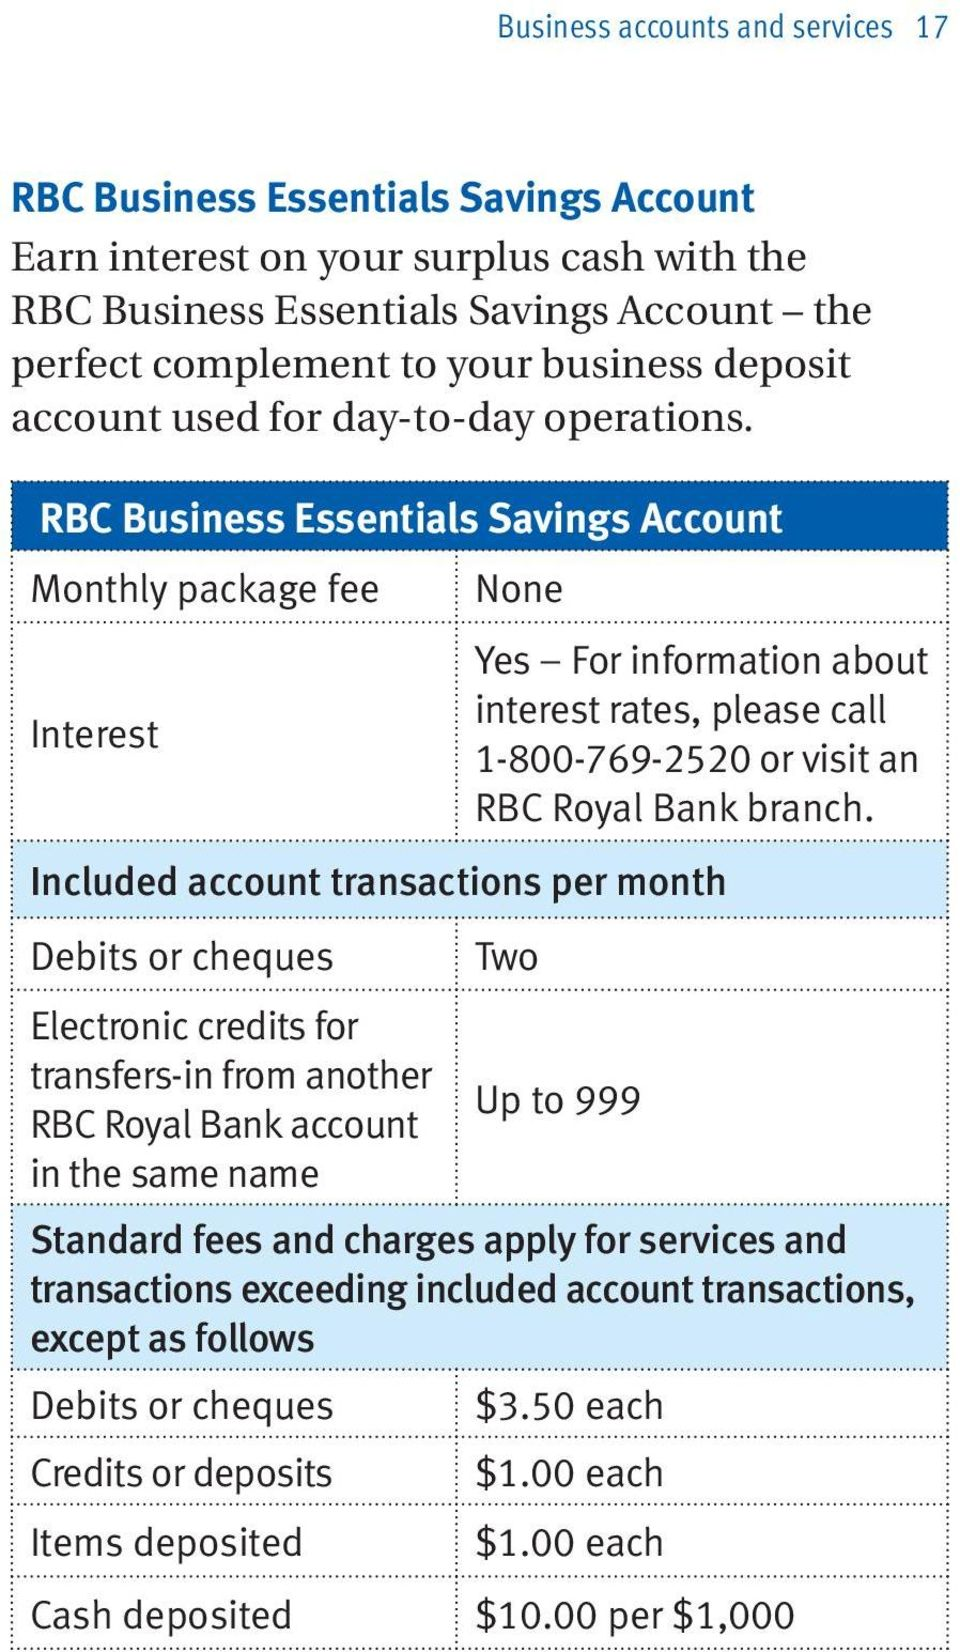 RBC Business Essentials Savings Account Monthly package fee None Interest Yes For information about interest rates, please call 1-800-769-2520 or visit an RBC Royal Bank branch.